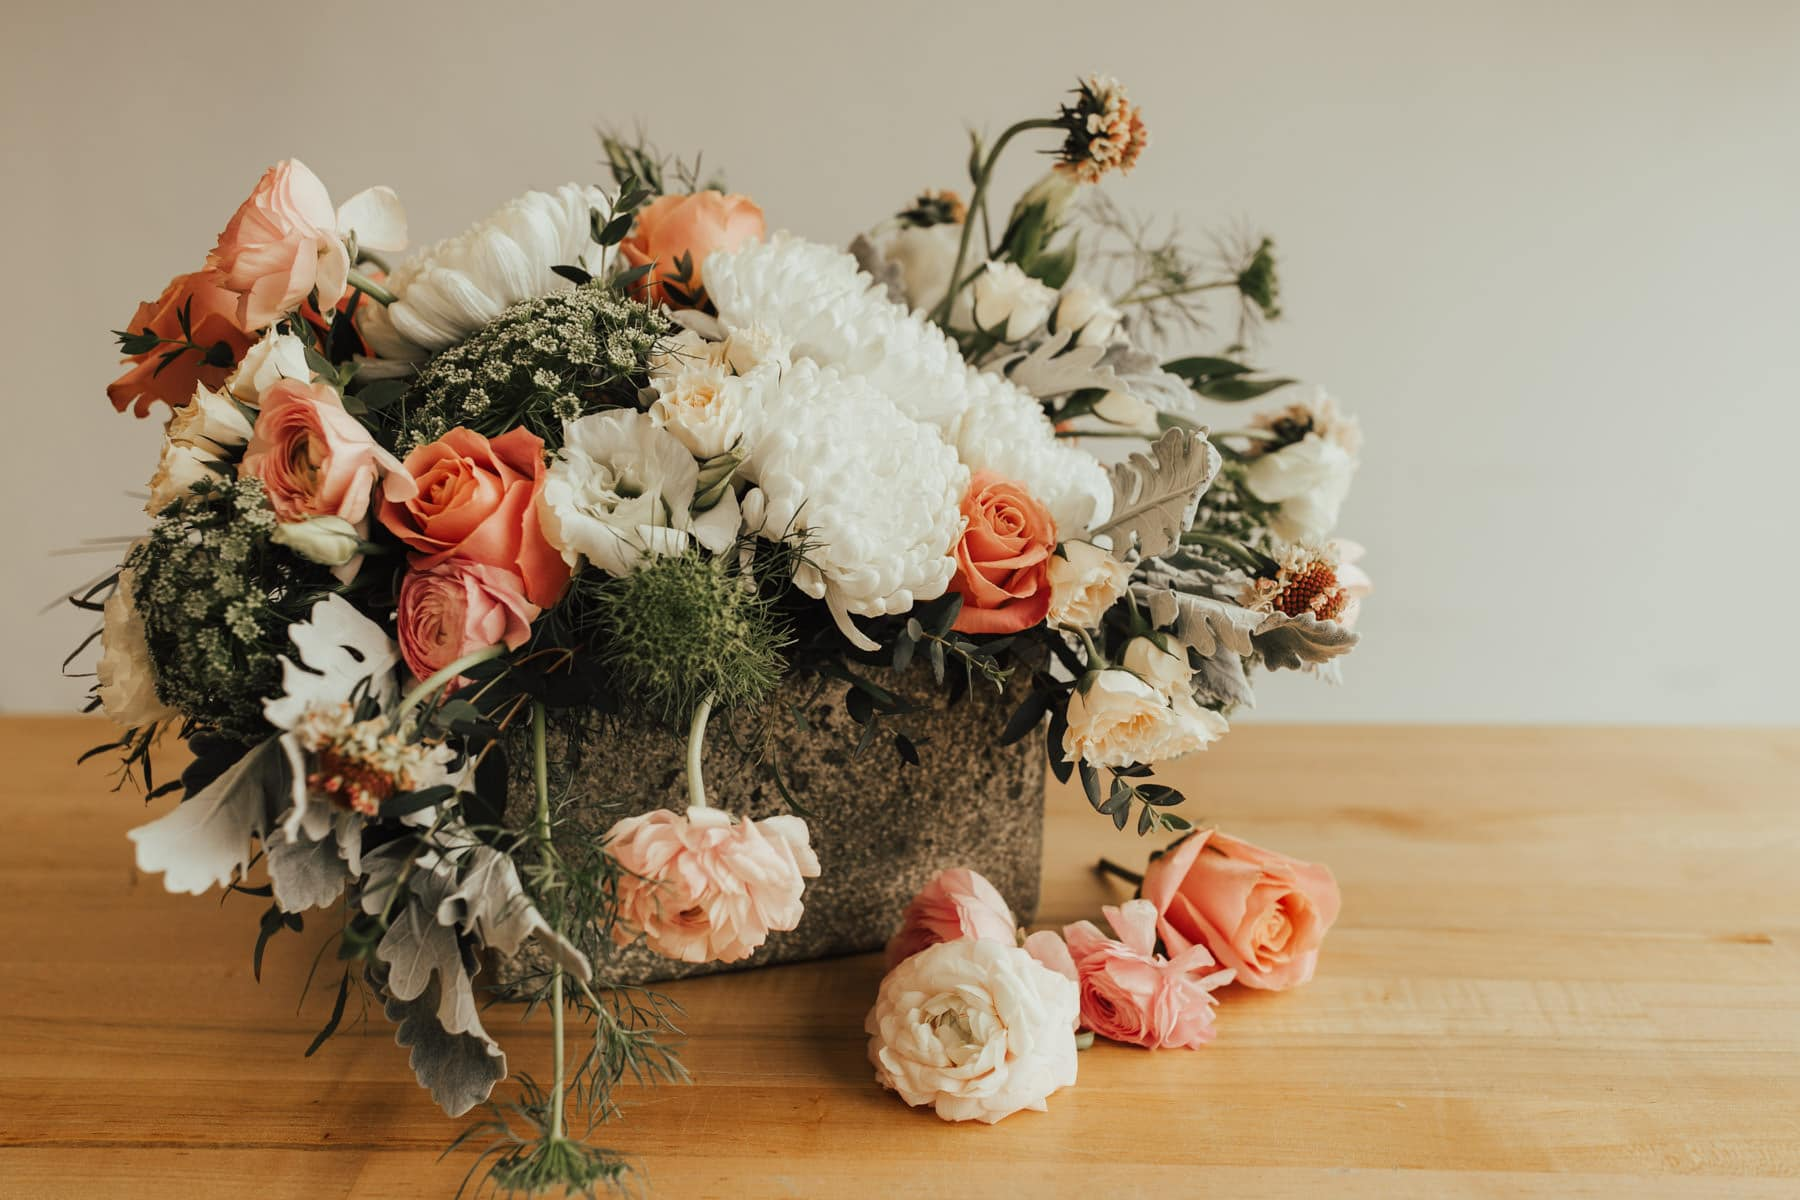 whimsical wedding floral centerpiece